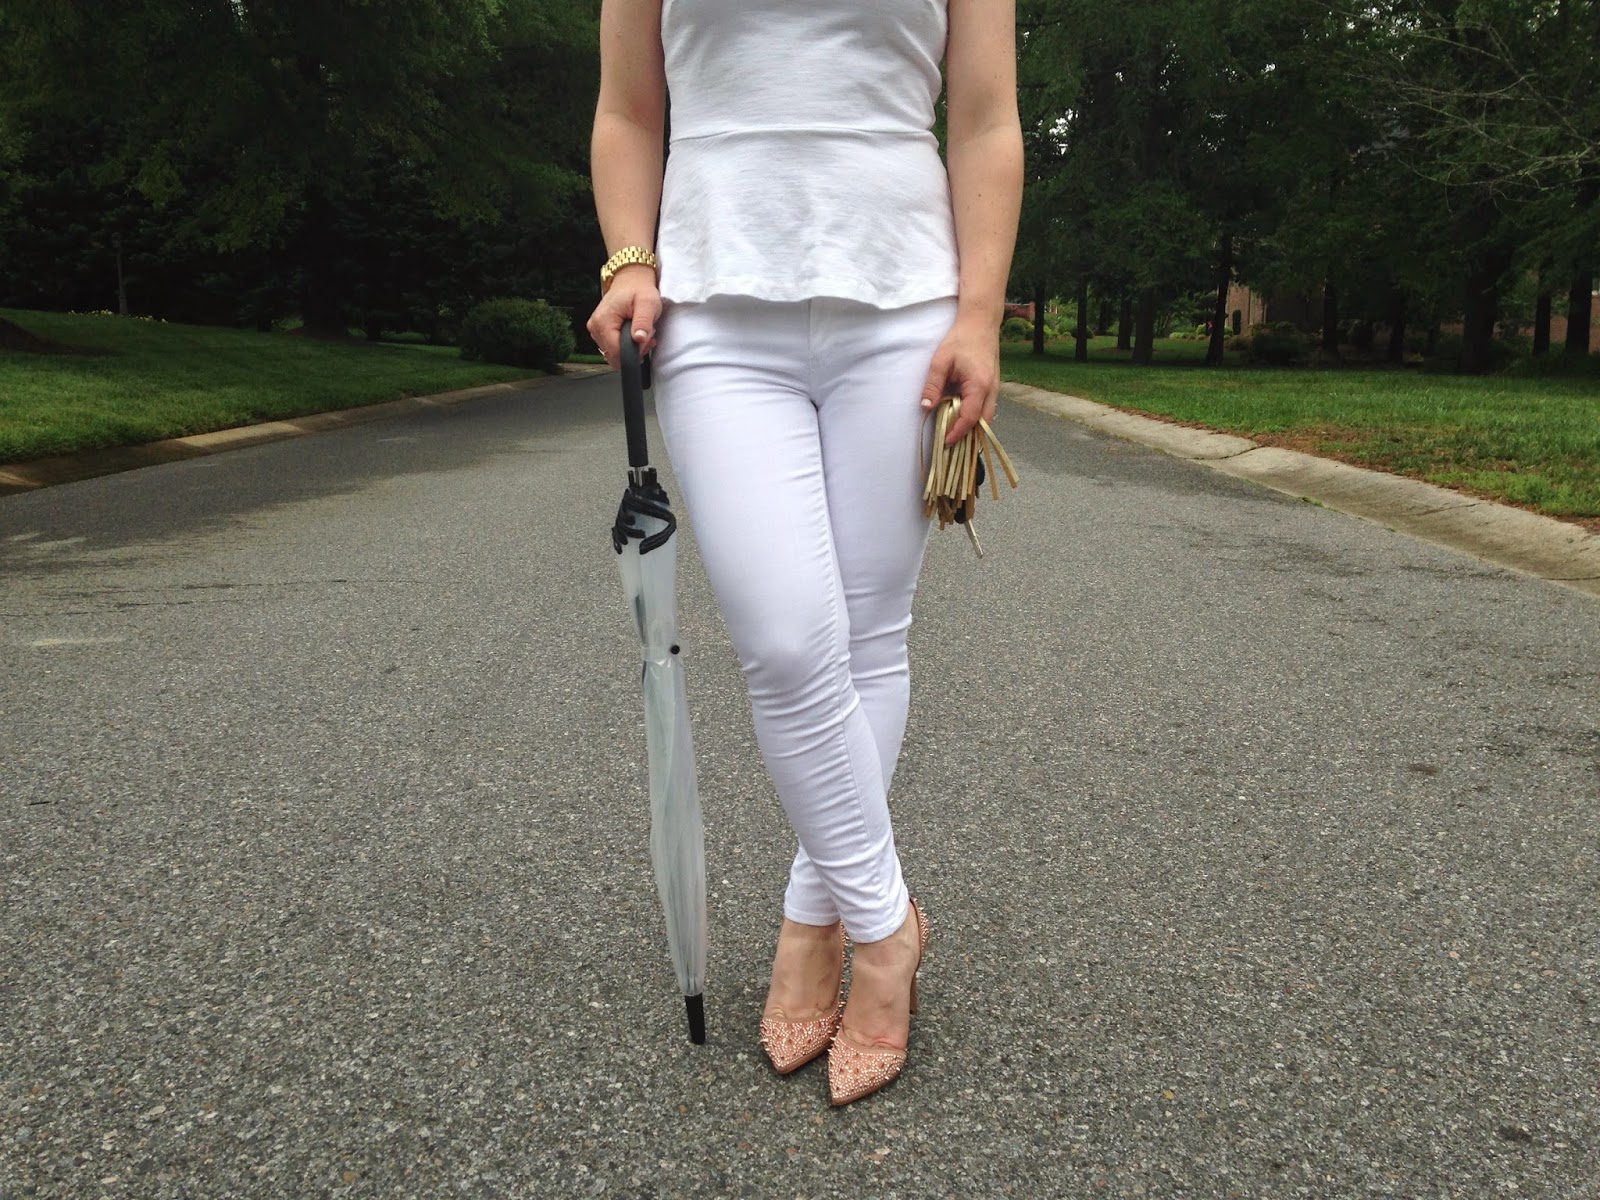 Gap White Jeans, JCrew, Kate Spade, Umbrella, rain day